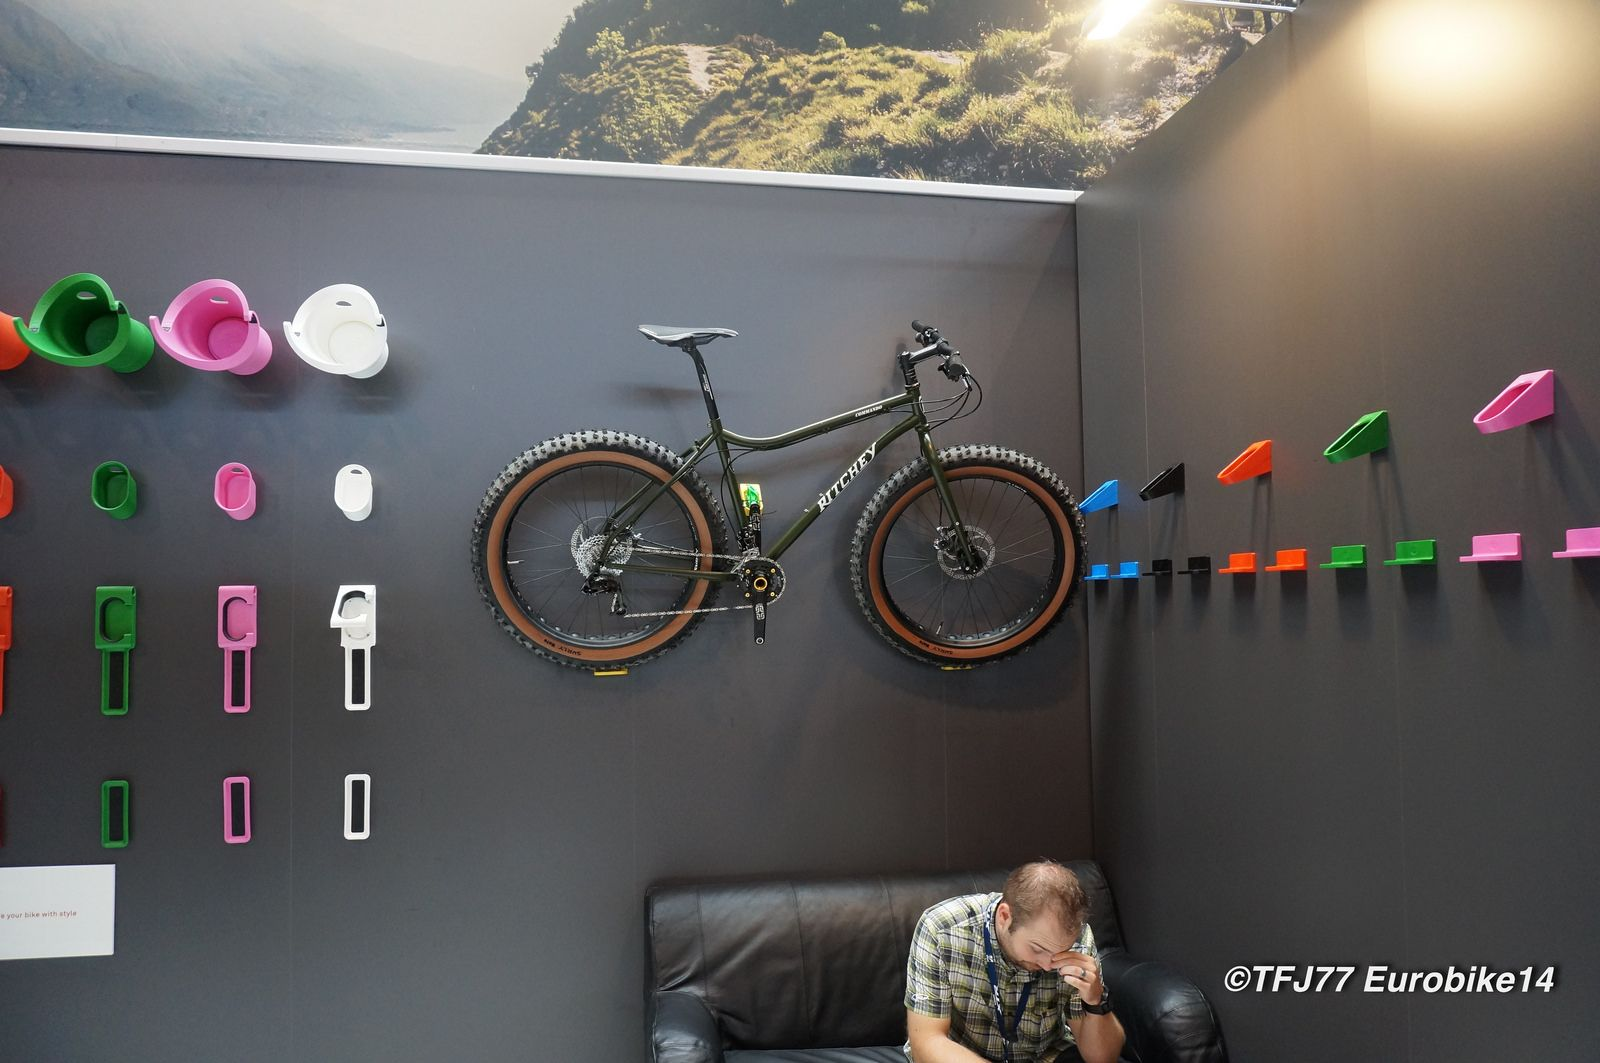 Eurobike 2014 | Flickr - Photo Sharing!